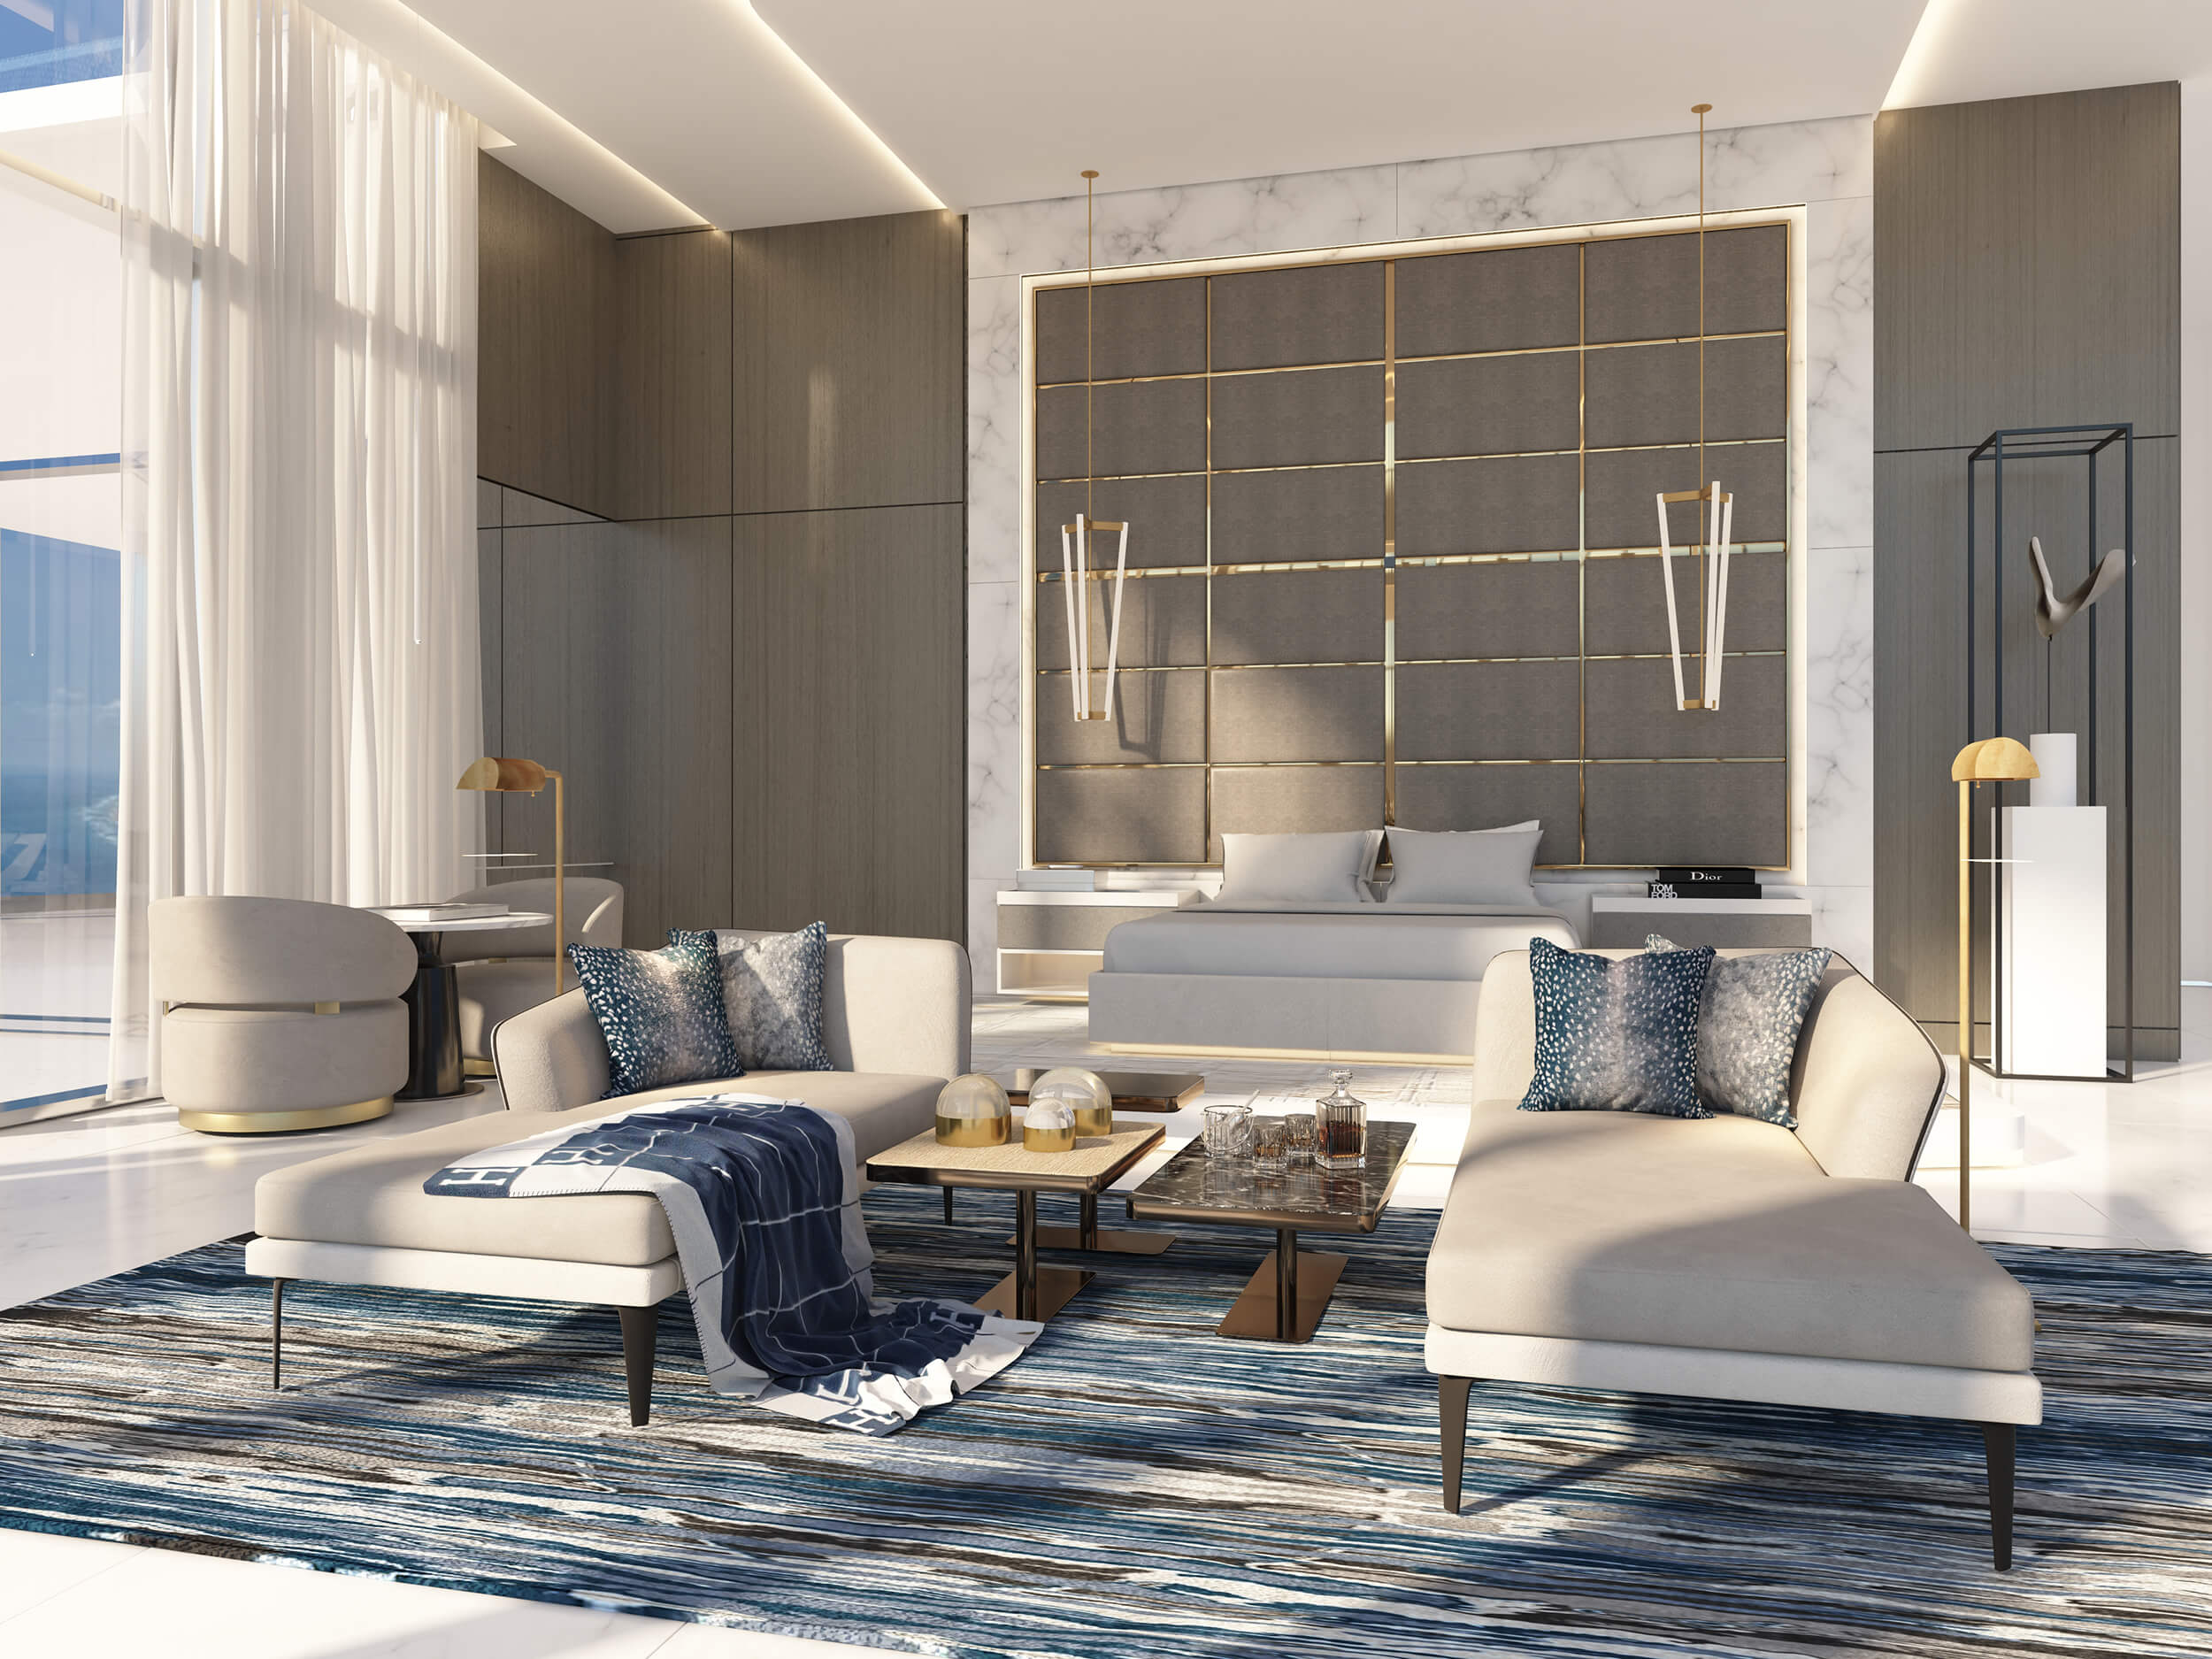 Master bedroom design by Britto Charette for our client at the Ritz Carlton Residences in Sunny Isles Beach